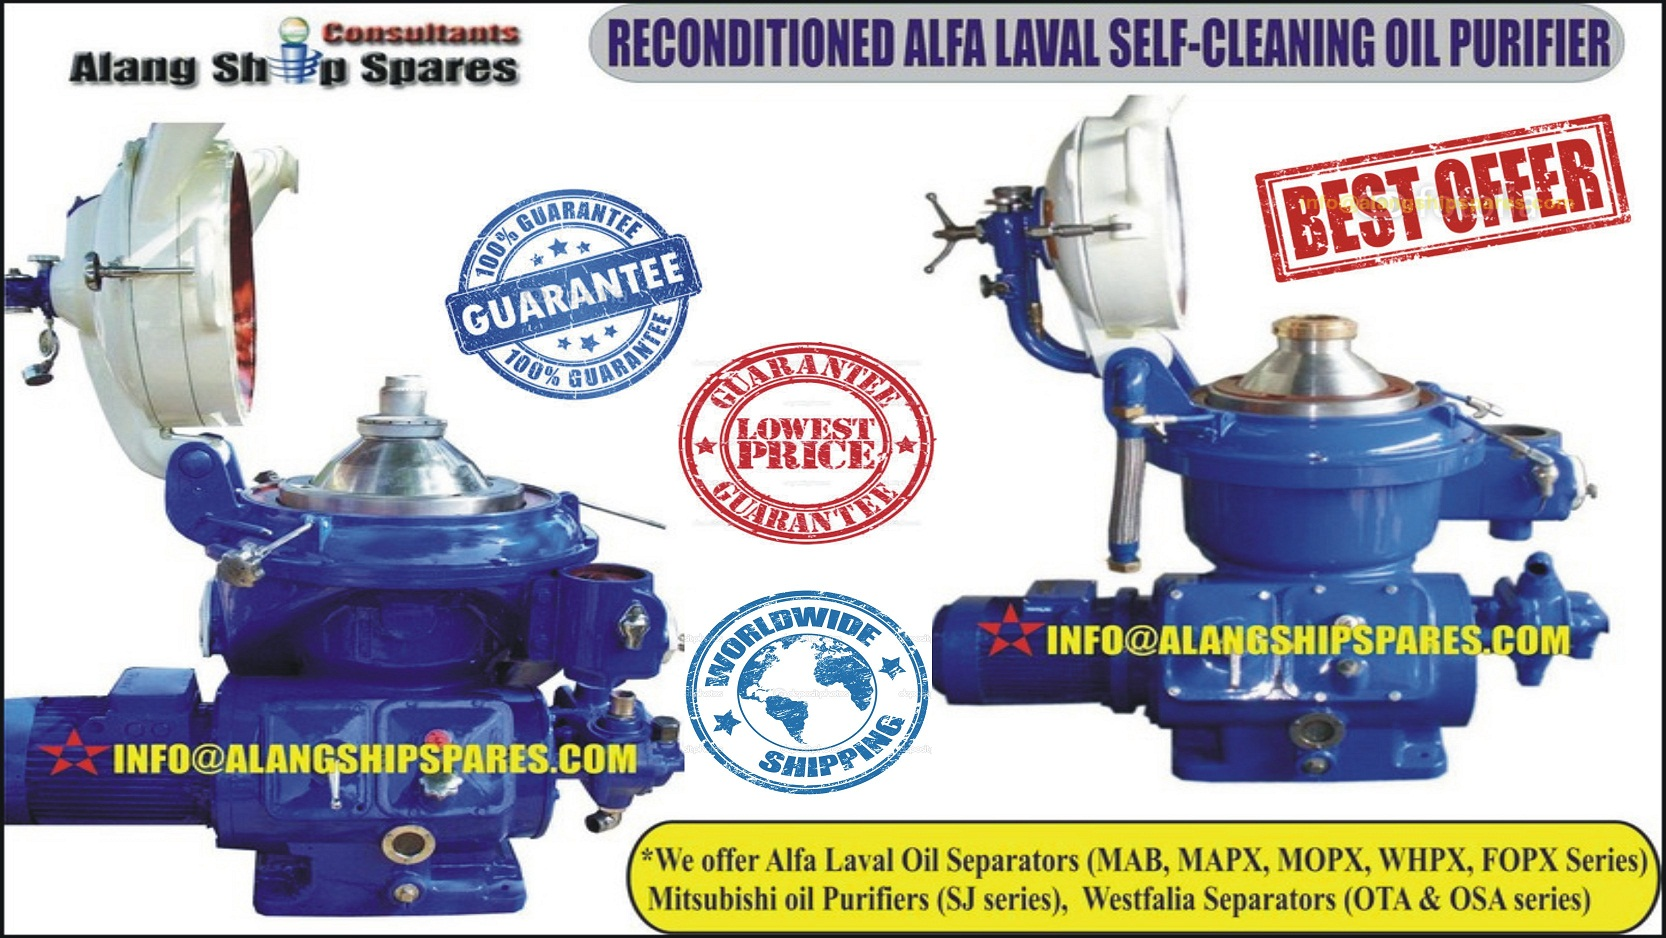 alang Ship spares consultant Main Image